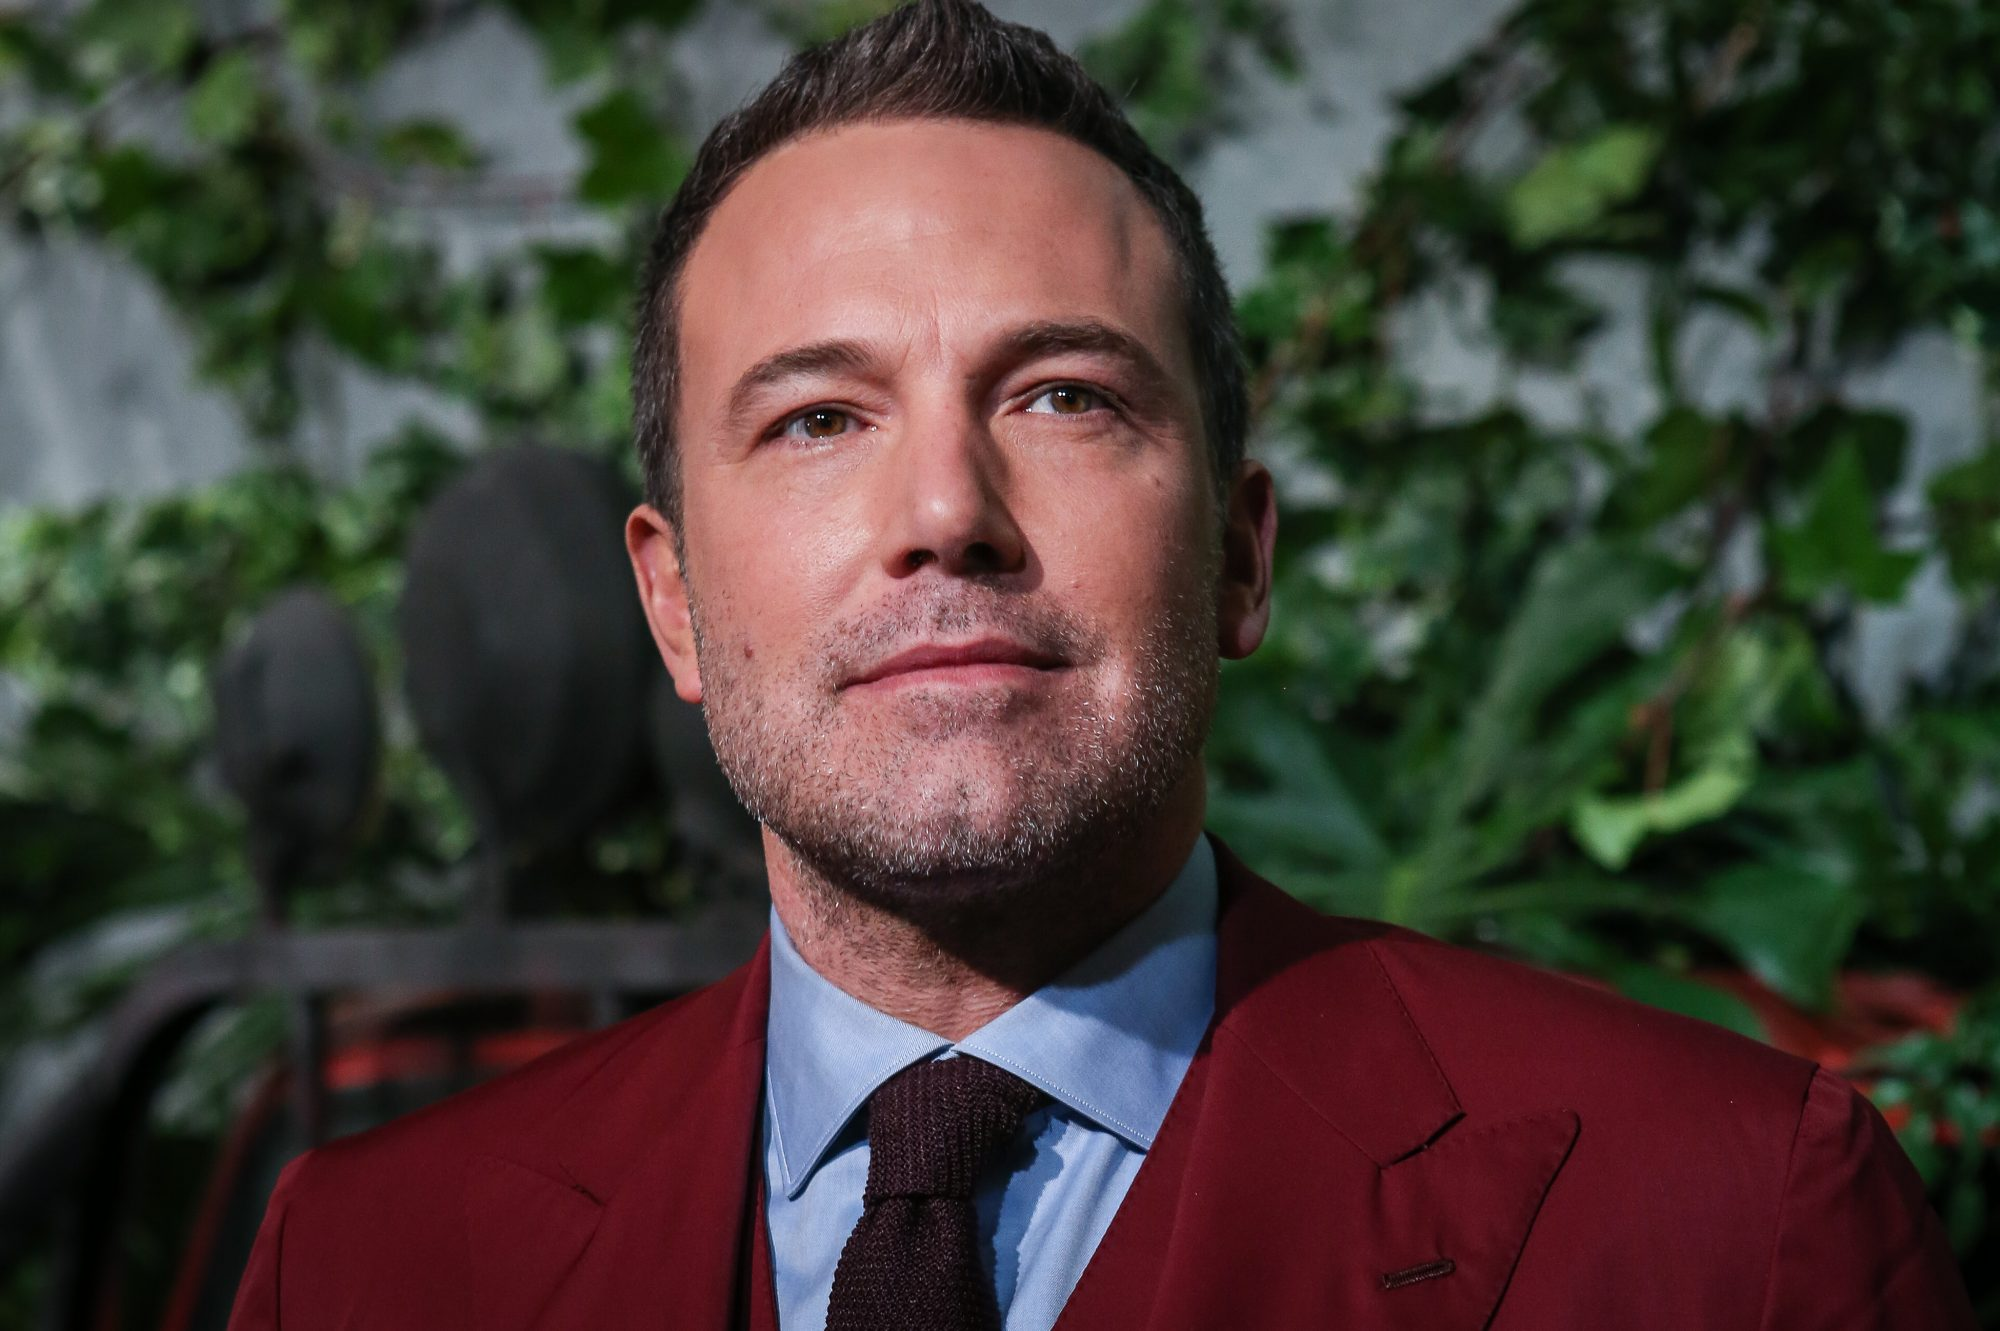 Ben Affleck Stopped His Press Tour Short for the Sweetest Reason